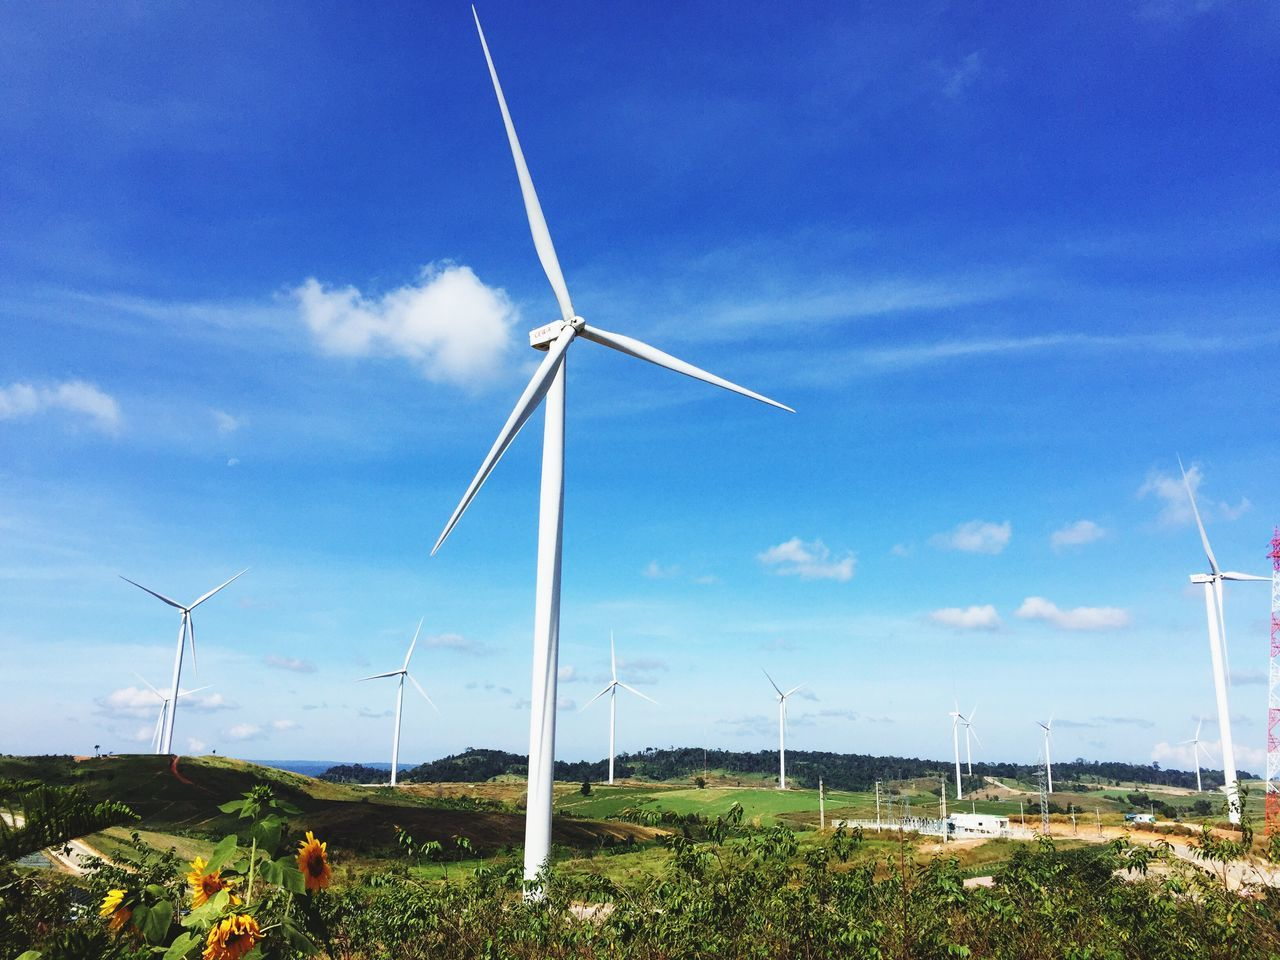 wind turbine, wind power, environmental conservation, alternative energy, fuel and power generation, renewable energy, windmill, industrial windmill, sky, nature, day, field, rural scene, outdoors, no people, blue, technology, traditional windmill, grass, landscape, beauty in nature